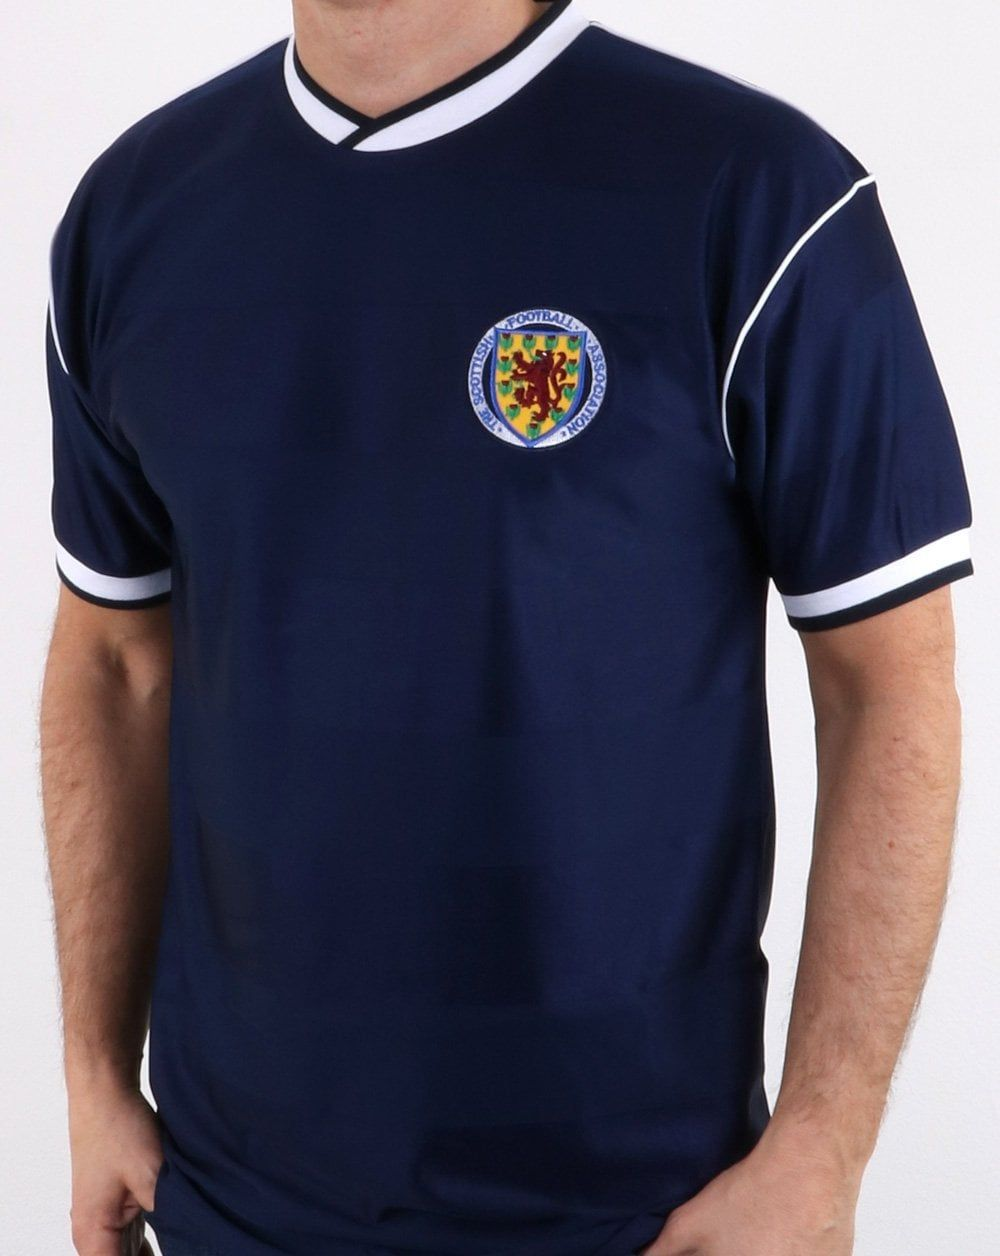 8e28747a552 Old Skool Retro Football Shirts available across 80s Casual Classics. Shop  teams such as England